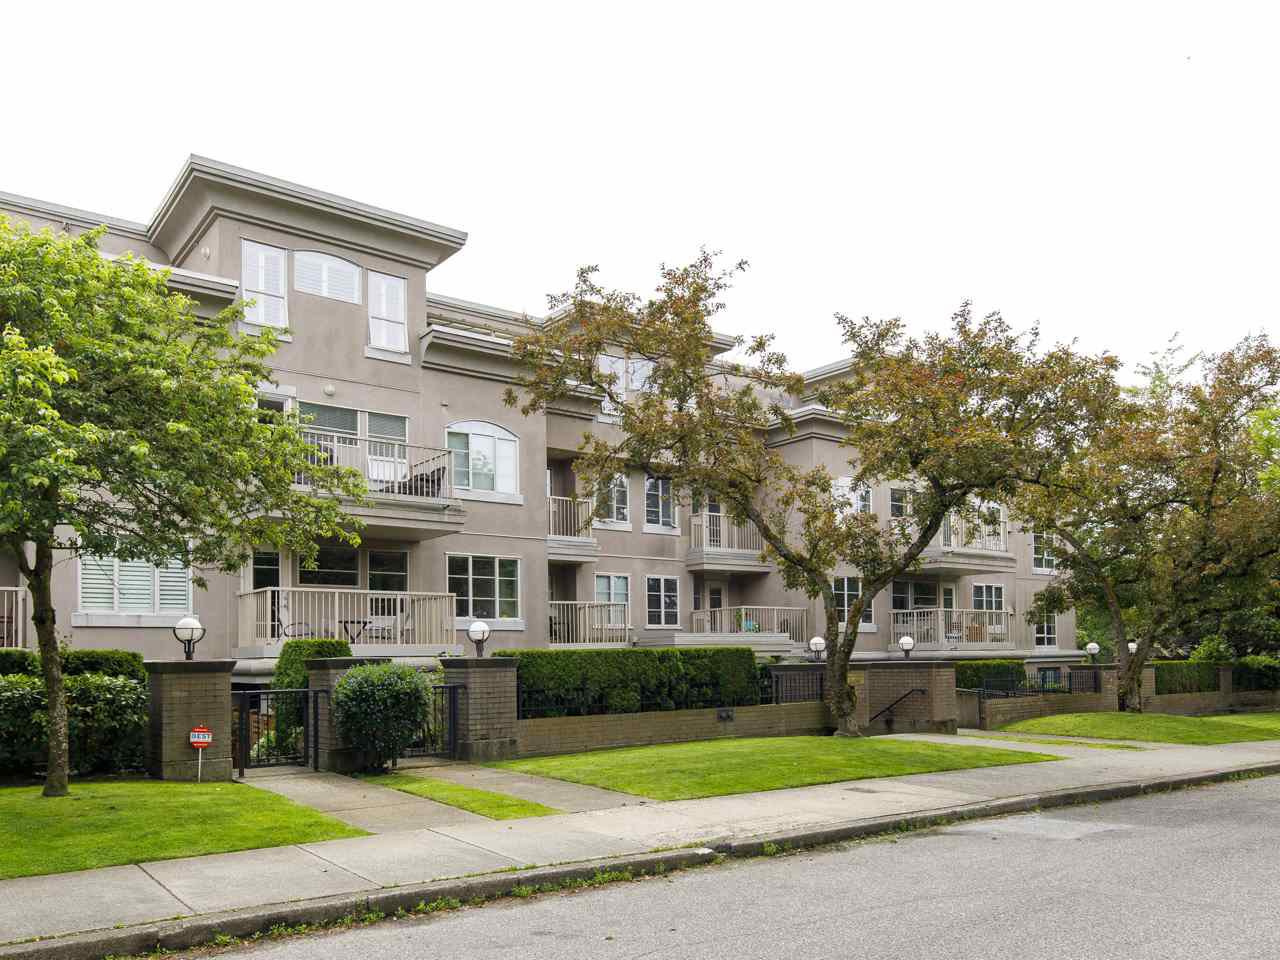 Main Photo: 204 2490 W 2 AVENUE in Vancouver: Kitsilano Condo for sale (Vancouver West)  : MLS®# R2466357